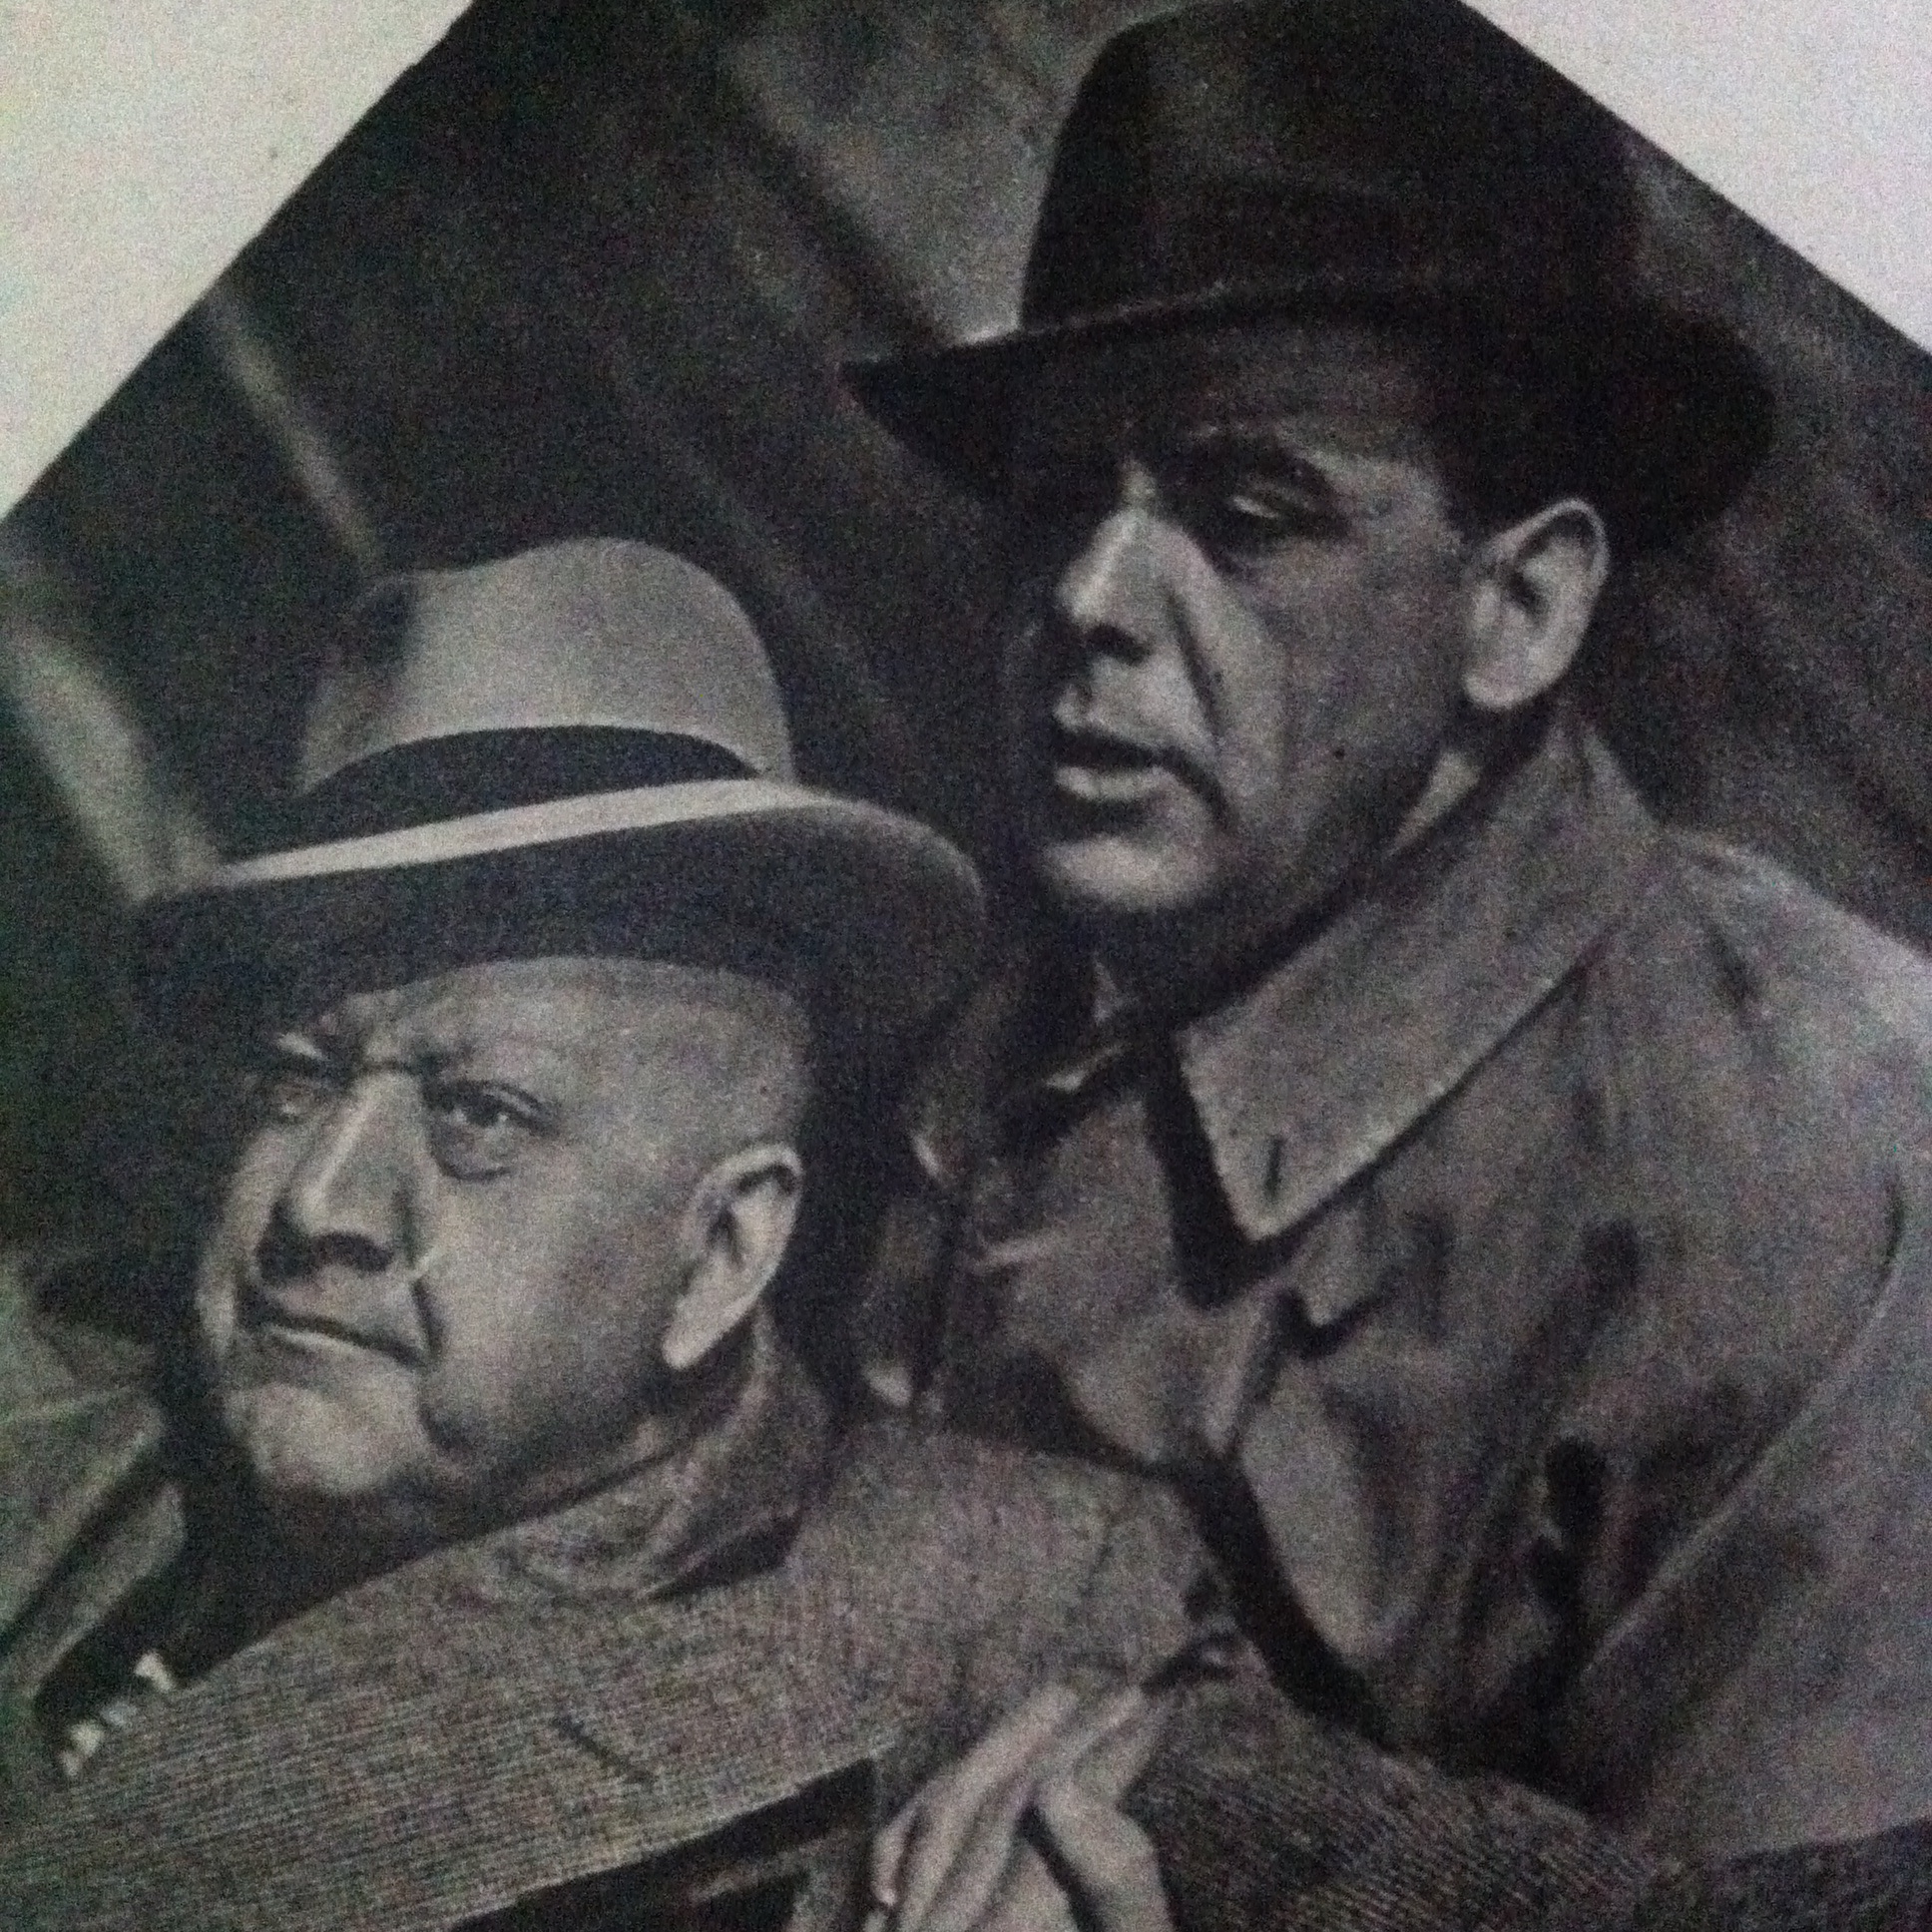 Alfred Drayton and Mervyn Johns in They Knew Mr. Knight (1946)